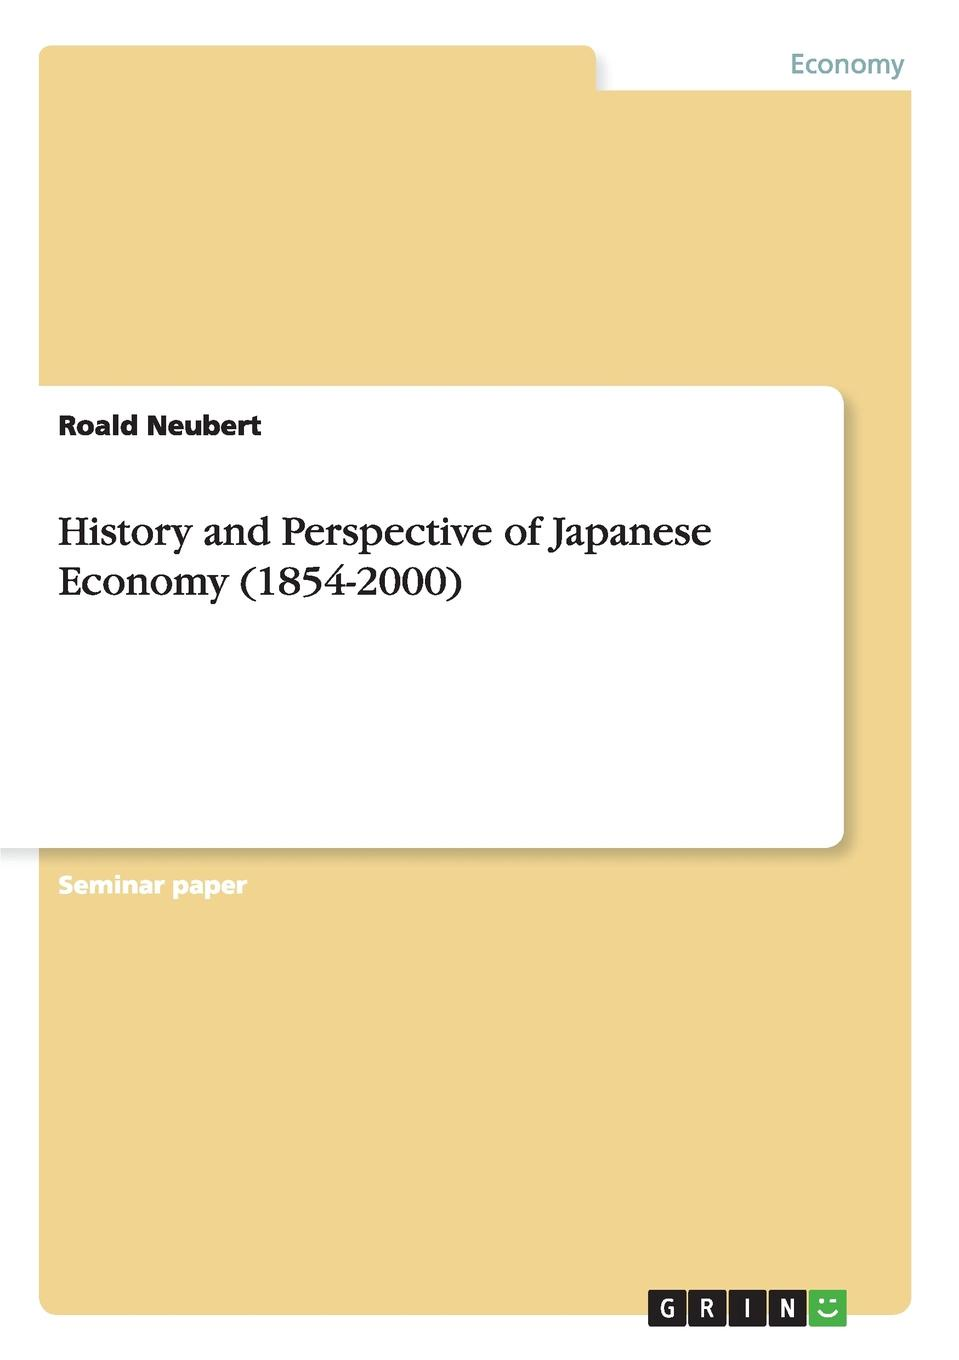 Roald Neubert History and Perspective of Japanese Economy (1854-2000) greg ip aarp the little book of economics how the economy works in the real world